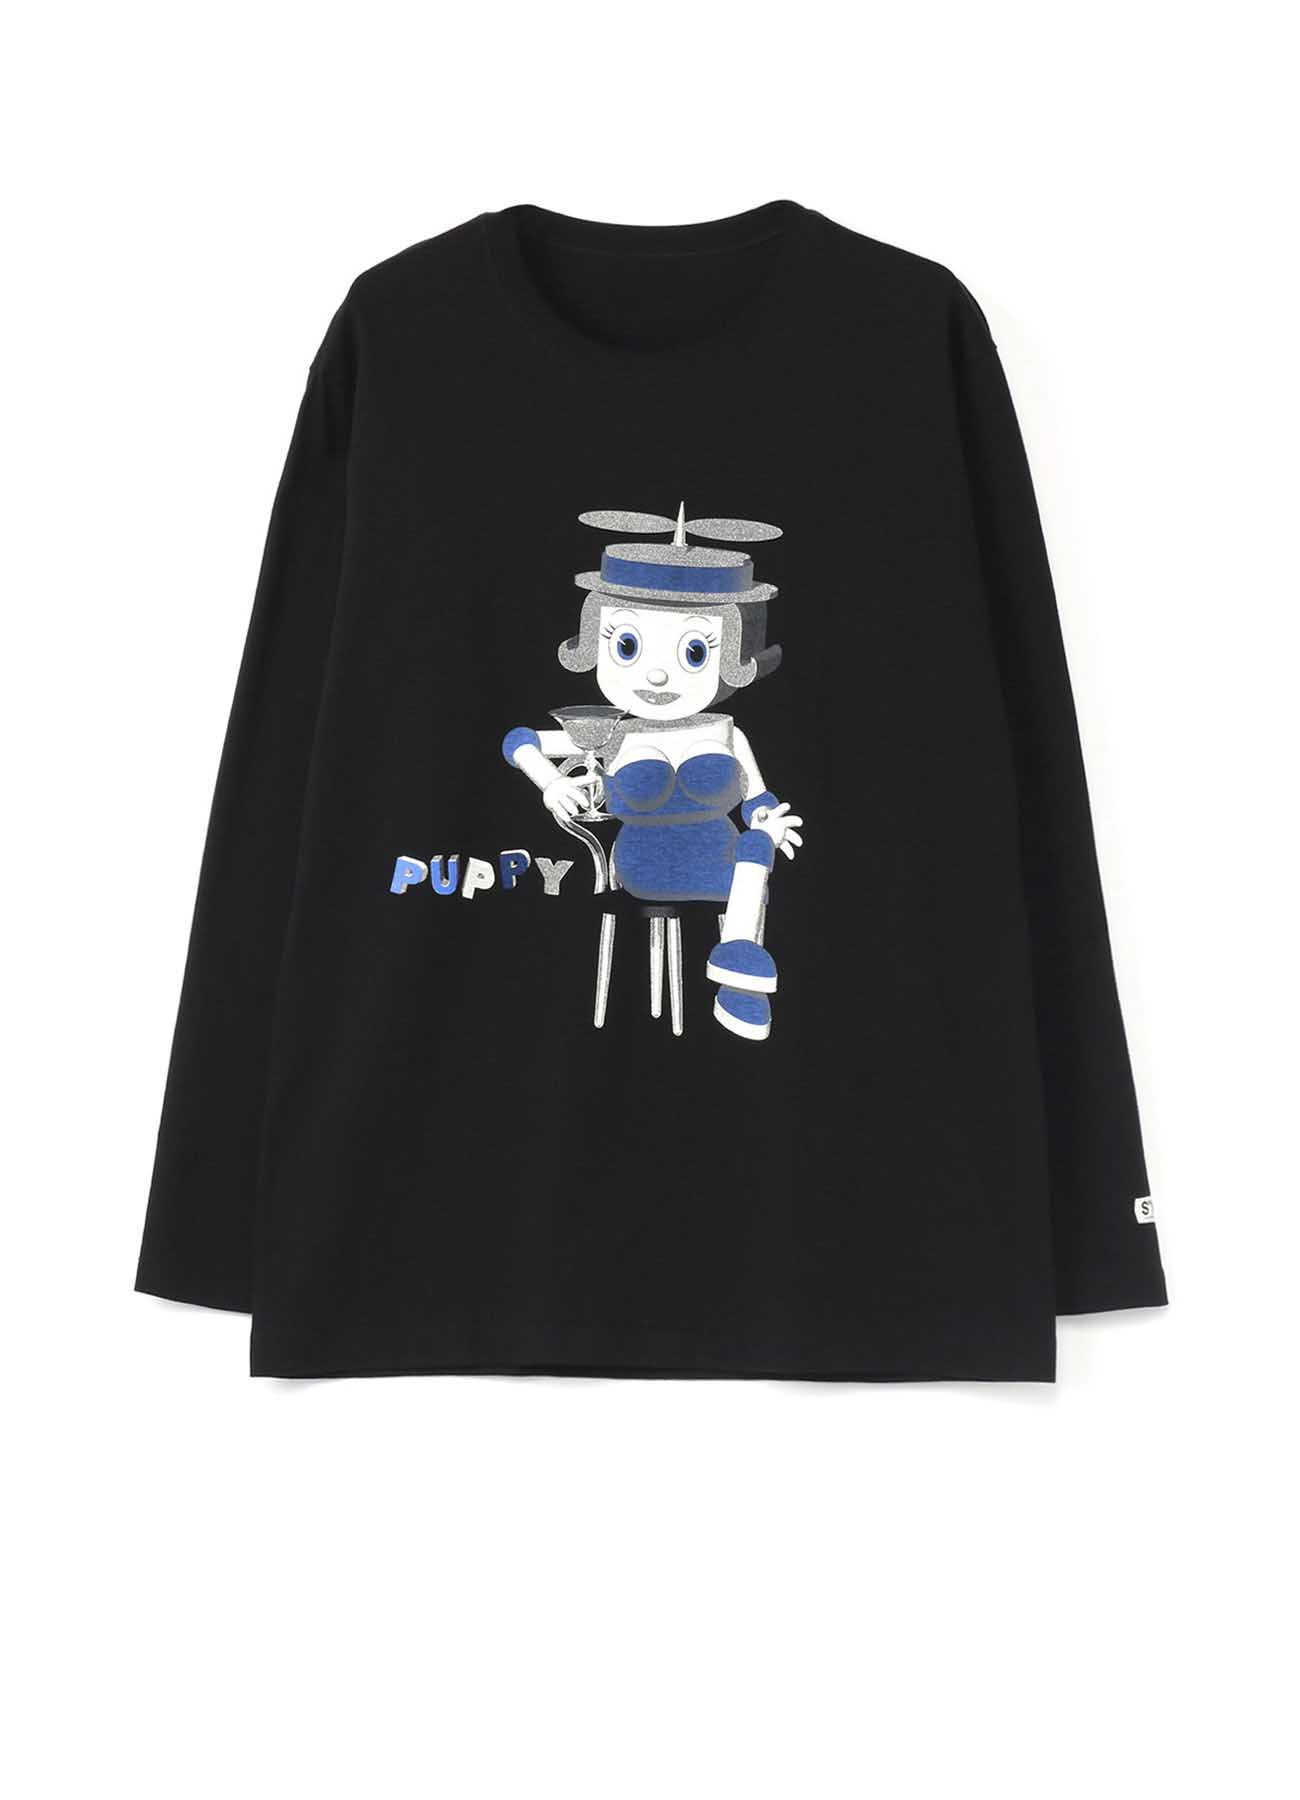 20/CottonJersey Cocktail Puppy Long Sleeve T-Shirt